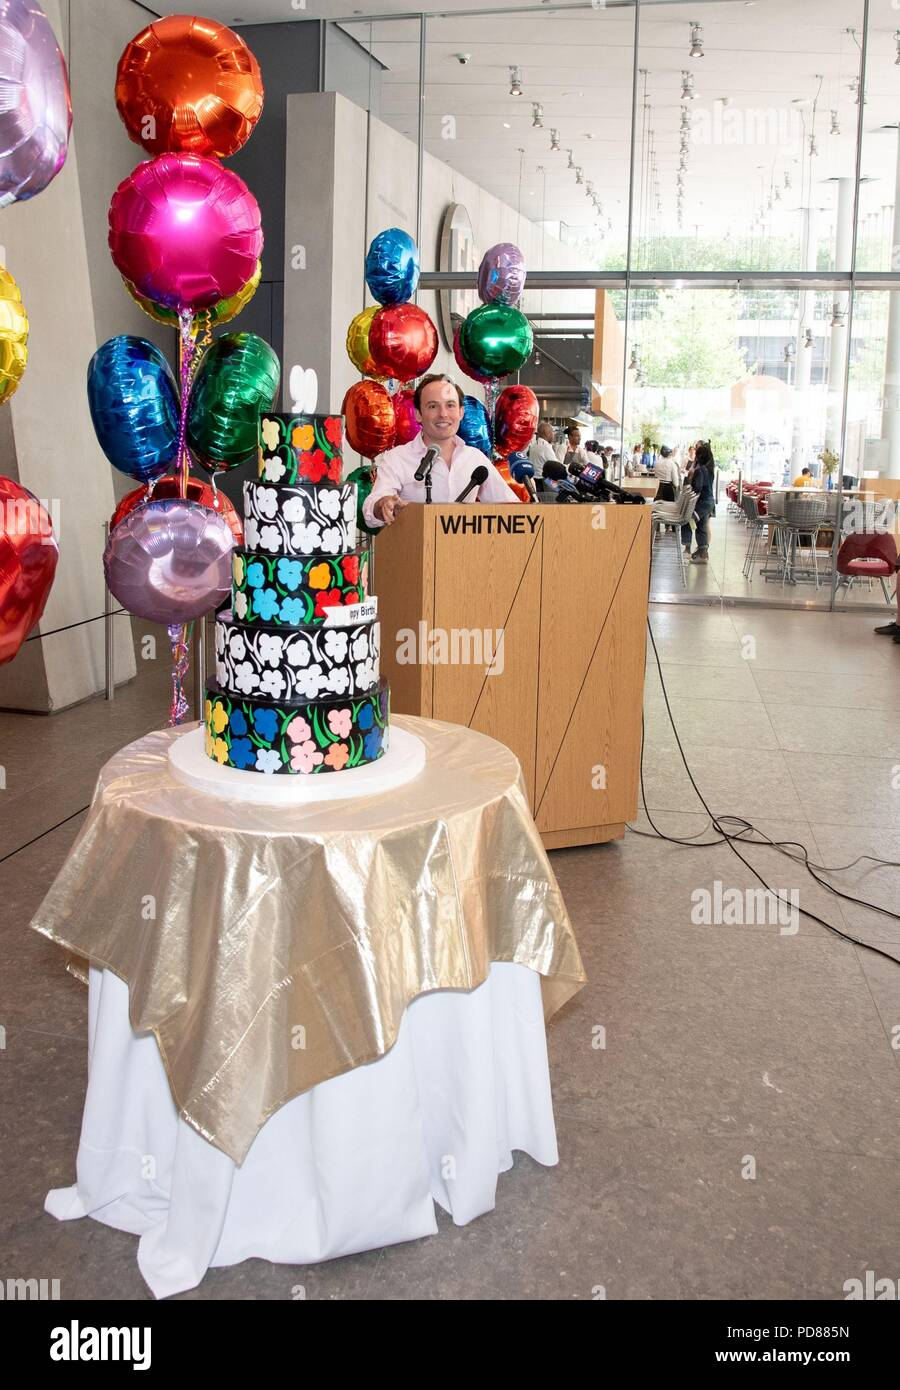 Andy Warhol Five Tier 90th Birthday Cake In Attendance For Anniversary Of Warhols Birth Whitney Museum American Art New York